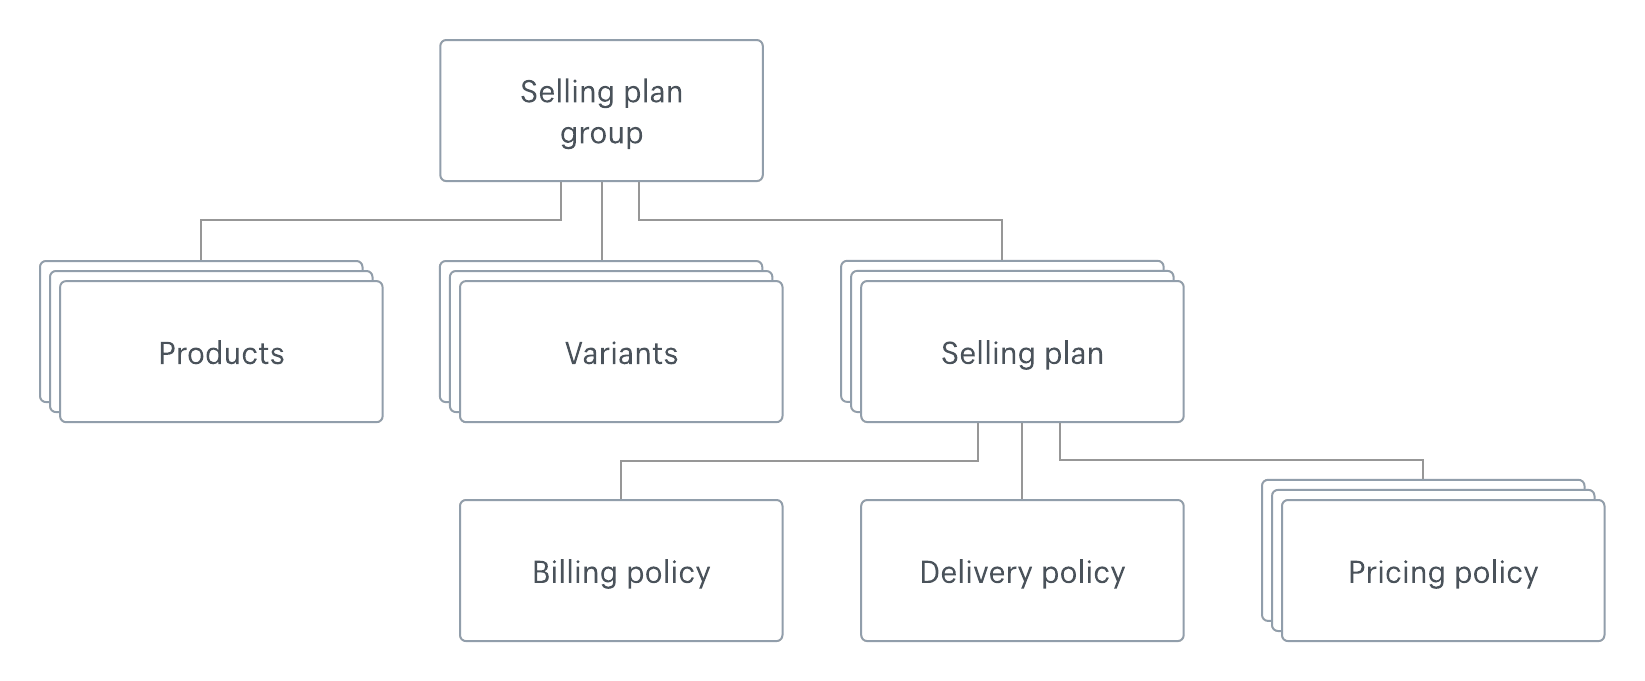 Selling plans objects diagram